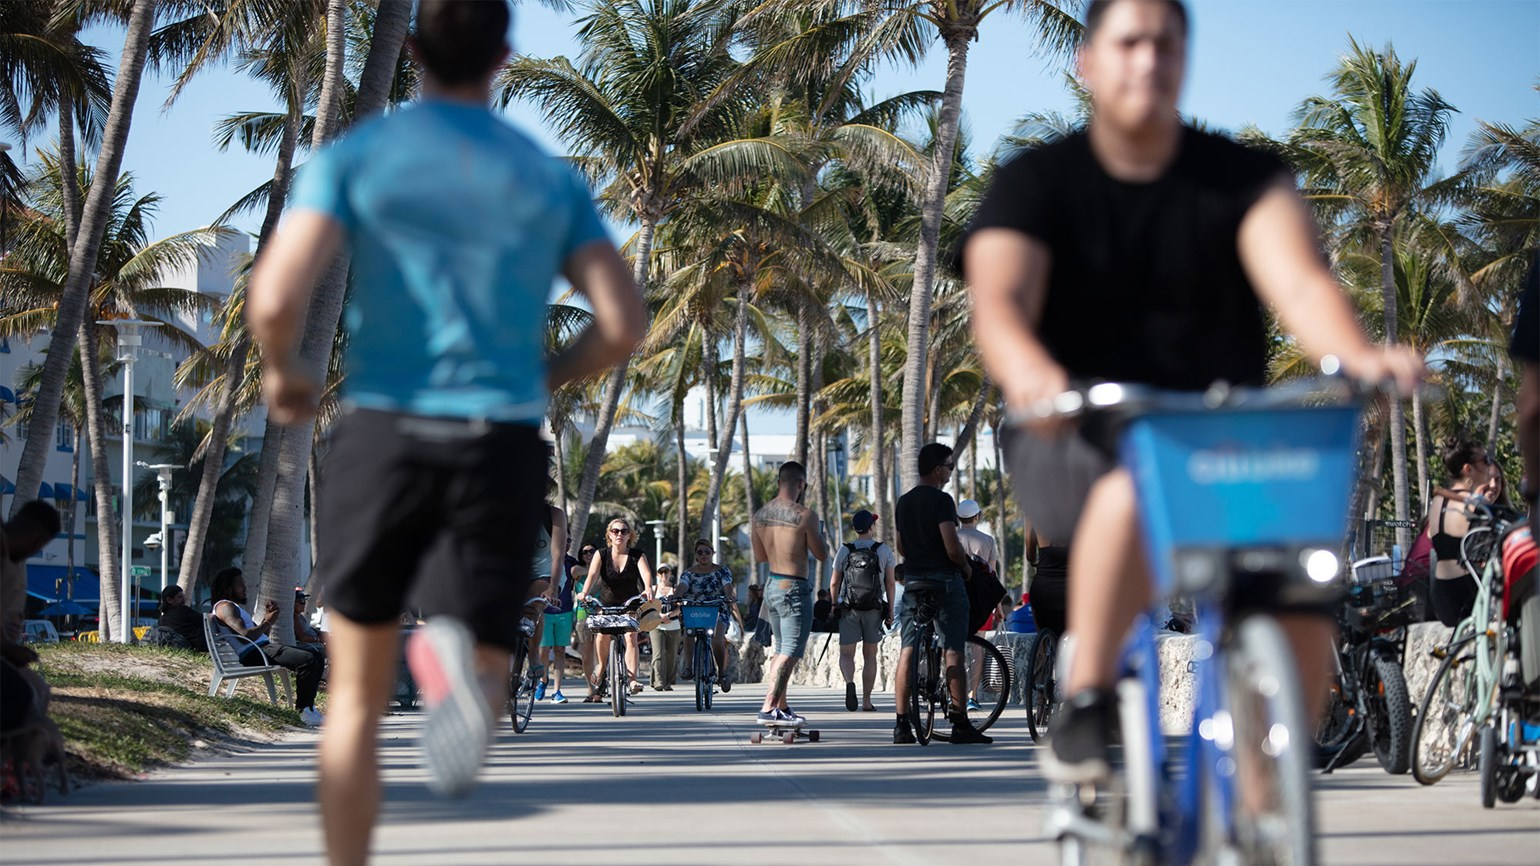 Mayor says Miami Beach needs makeover after spring break